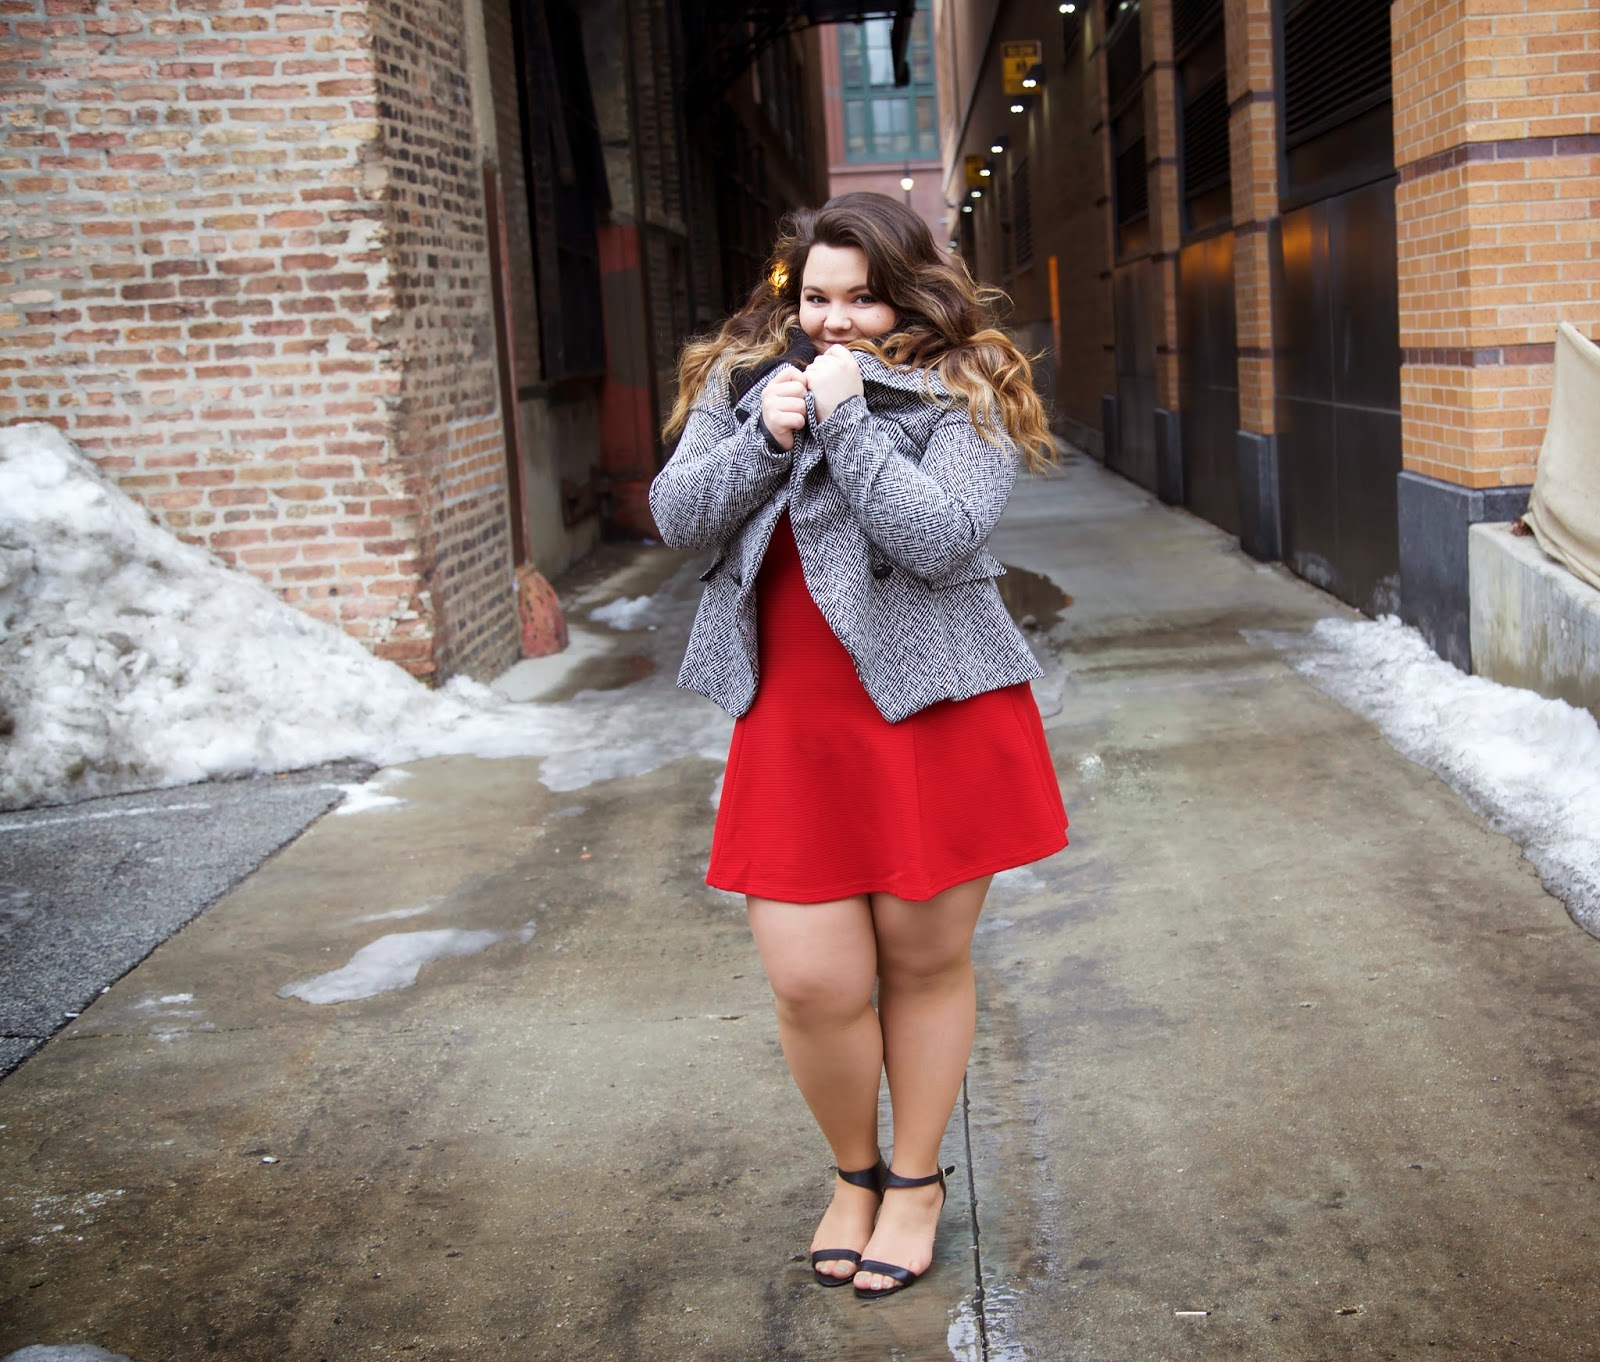 Valentines Day outfit, dress, winter style, chicago, bbw, curvy girls, natalie craig, natalie in the city, plus size fashion blogger, fashion blogger, forever 21, RED MINI DRESS, houndstooth coat, forever 21 plus size, ootd